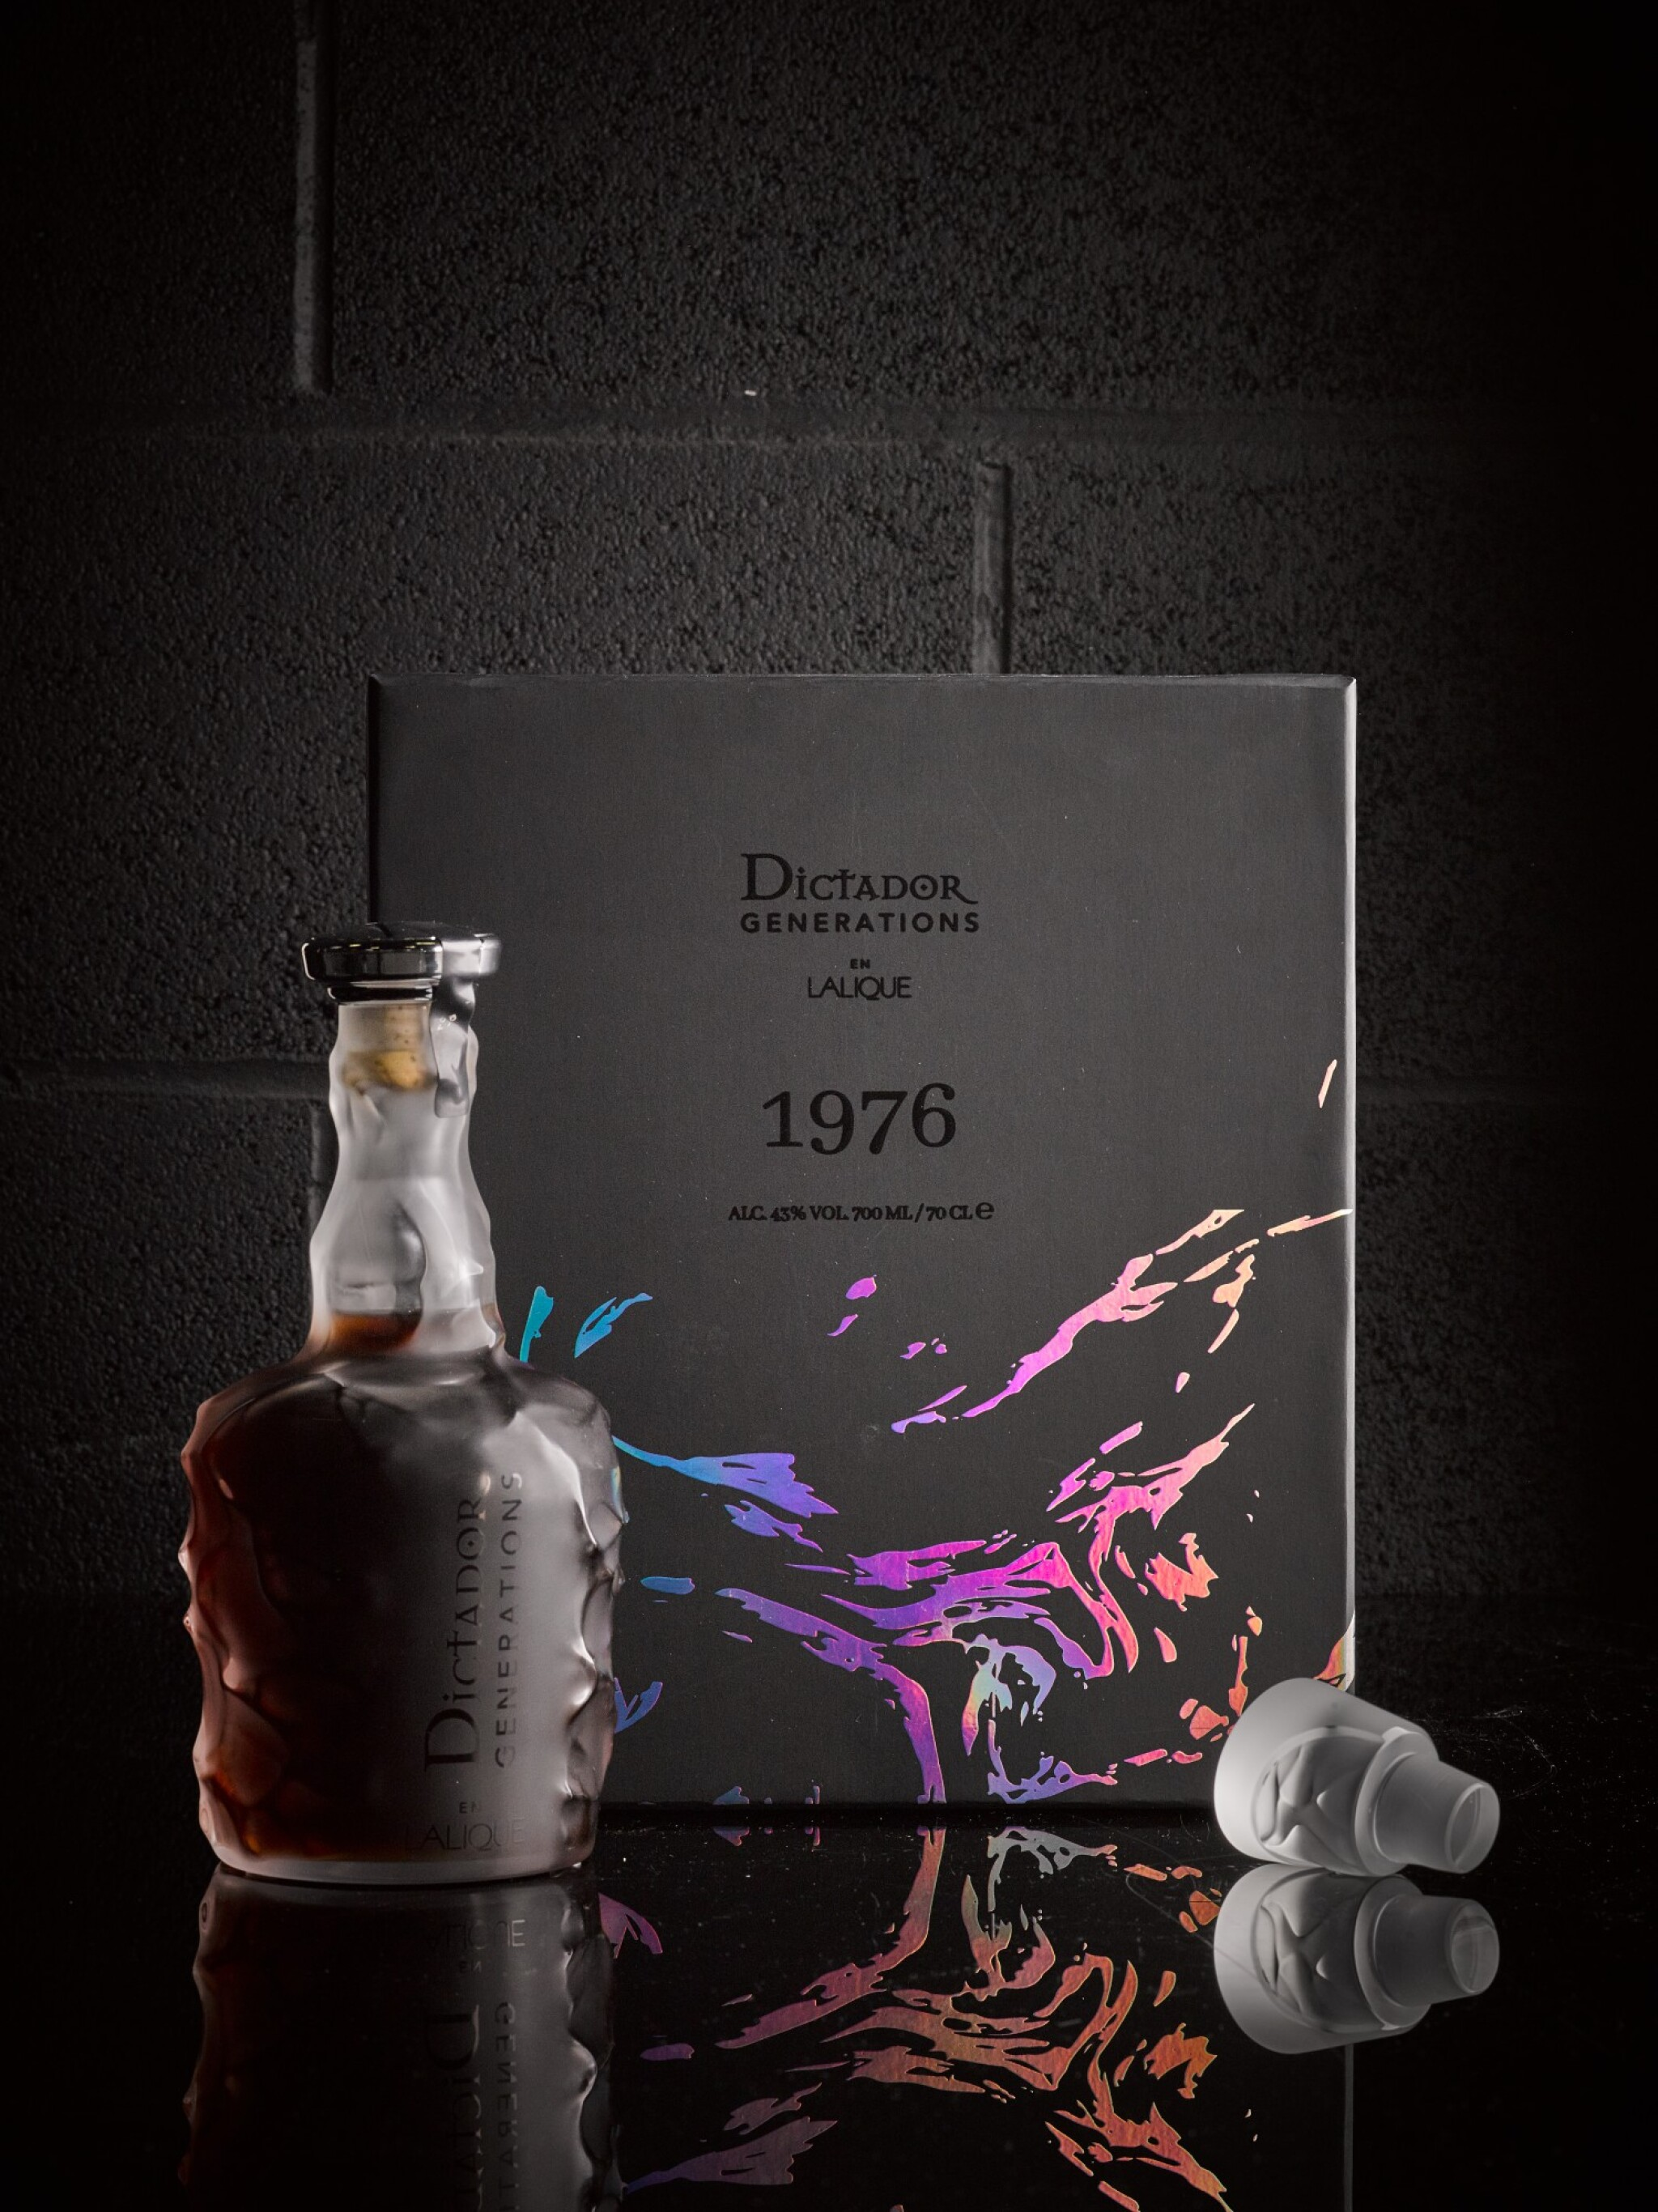 View 1 of Lot 39. Dictador Generations In Lalique 'The Proof Bottle' 43.0 abv 1976 .